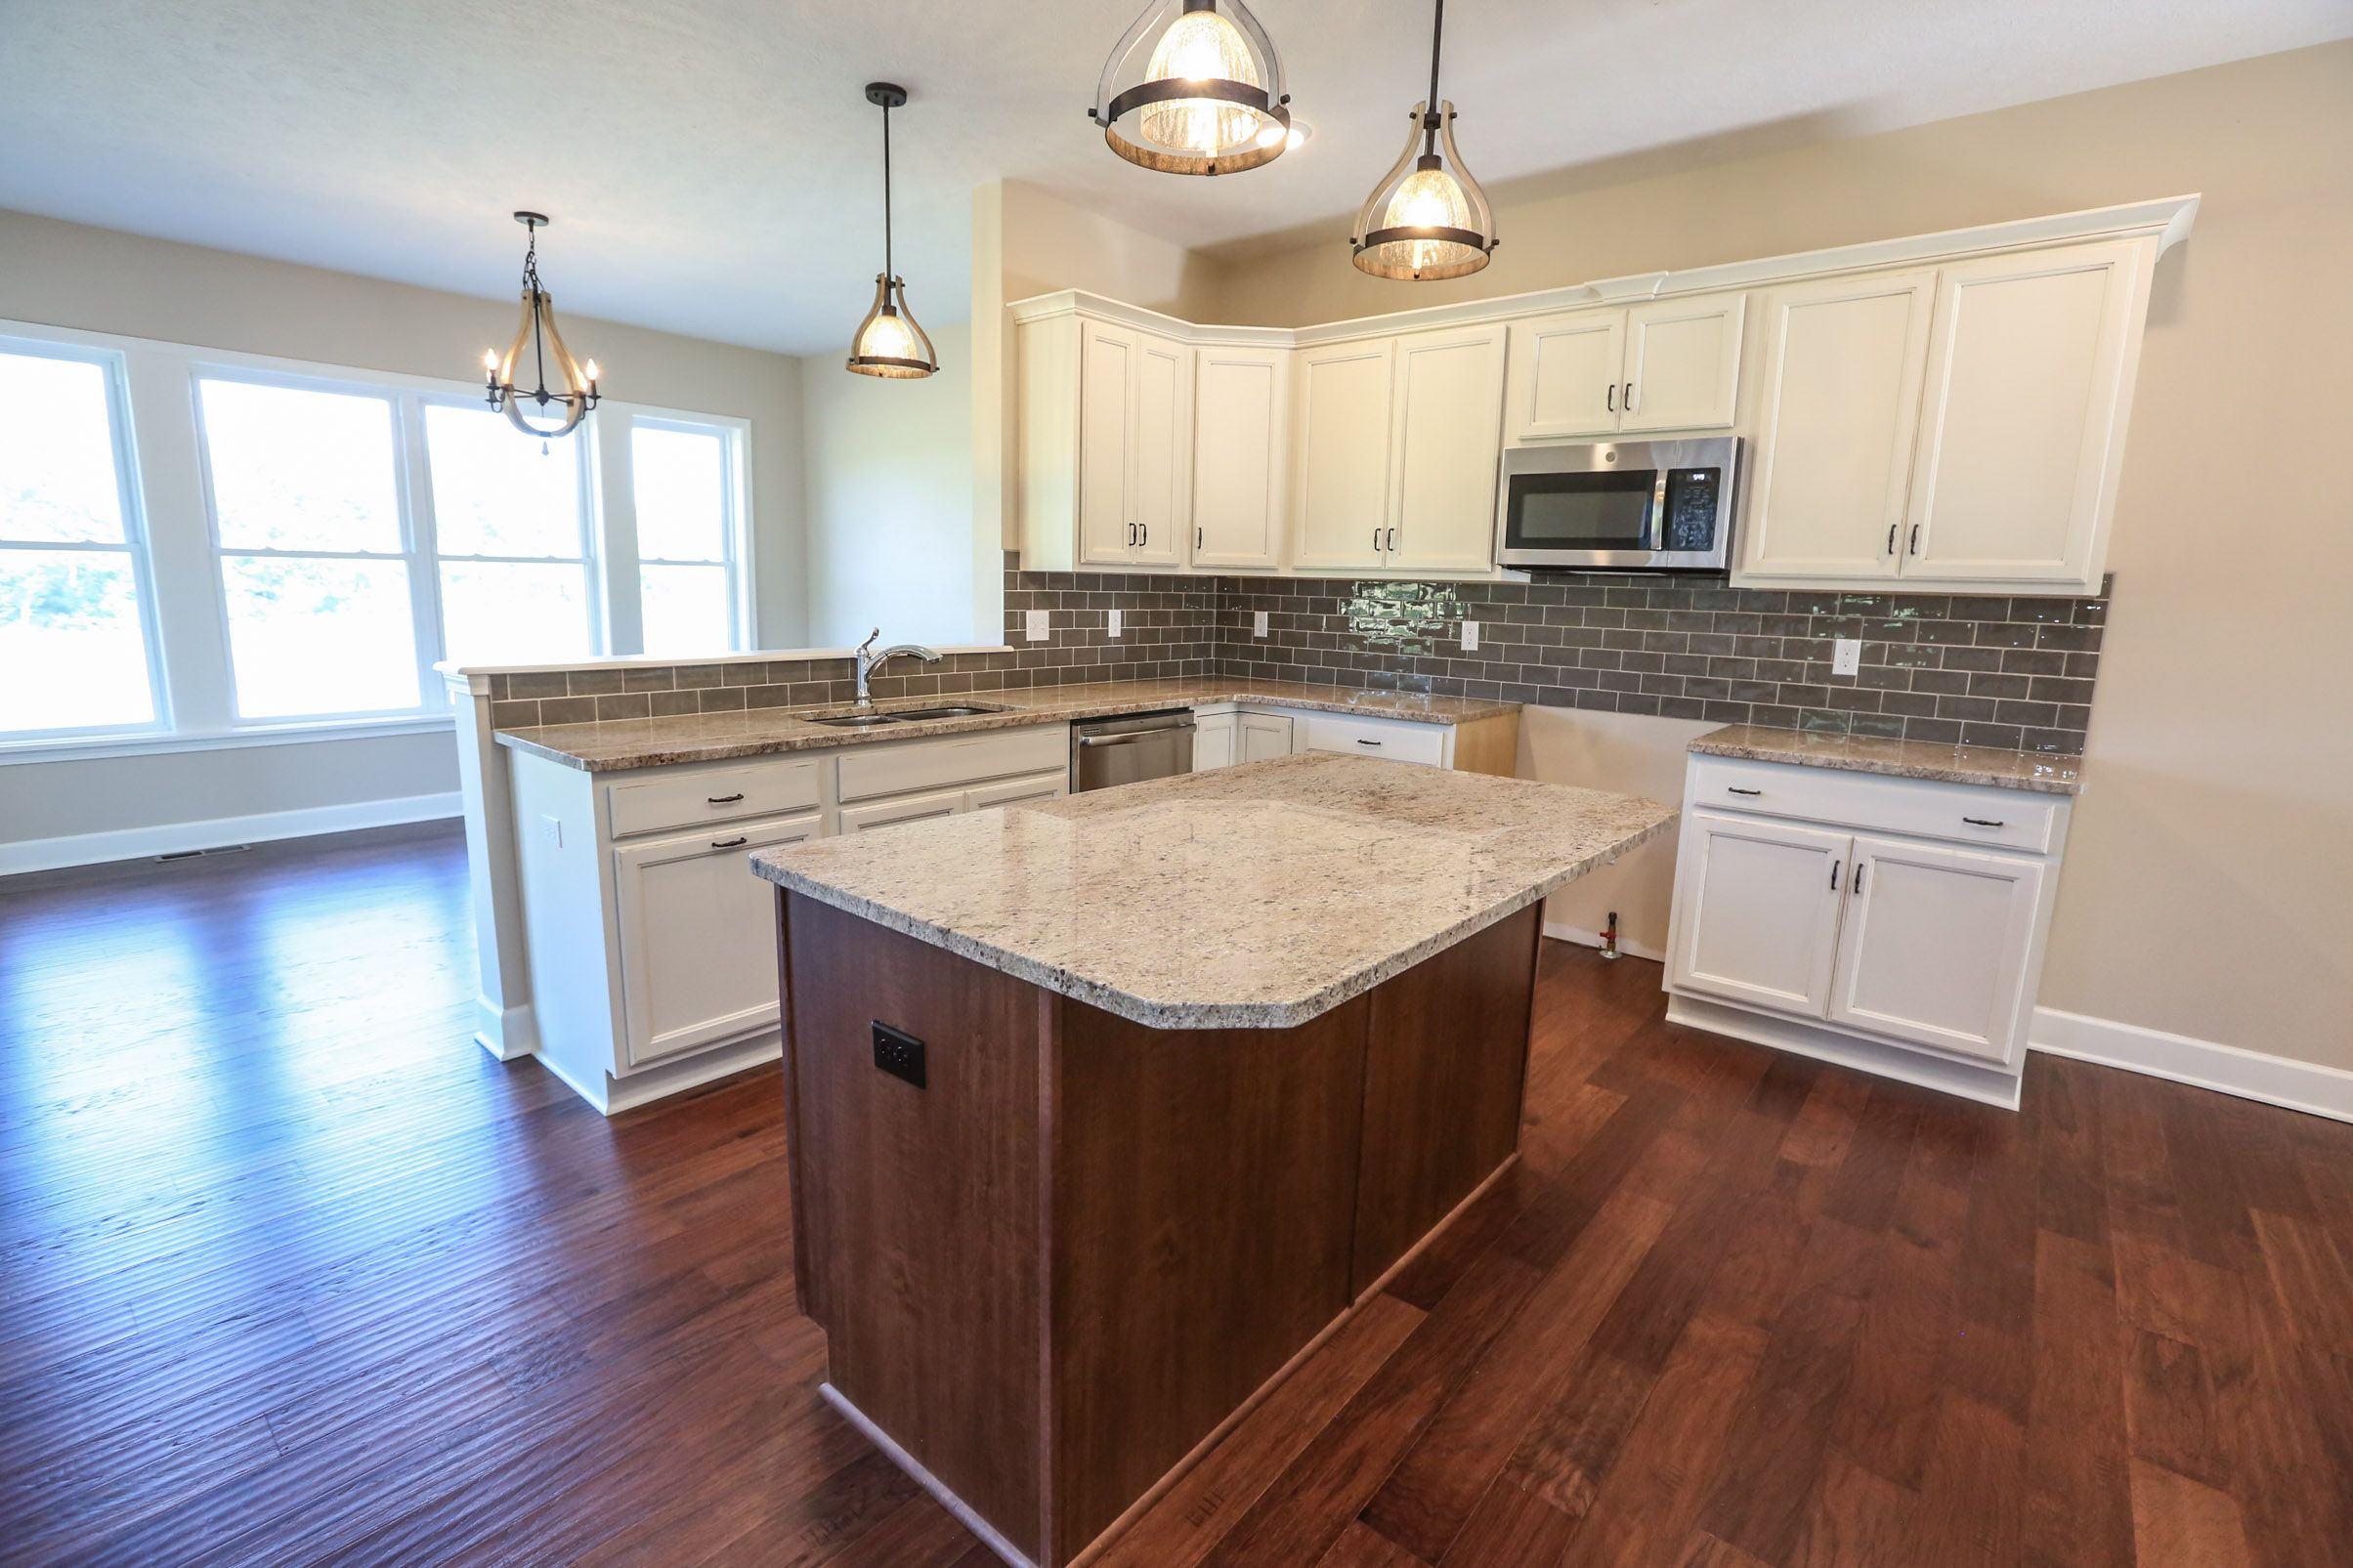 Kitchen featured in The Brentwood By Riedman Homes in Rochester, NY